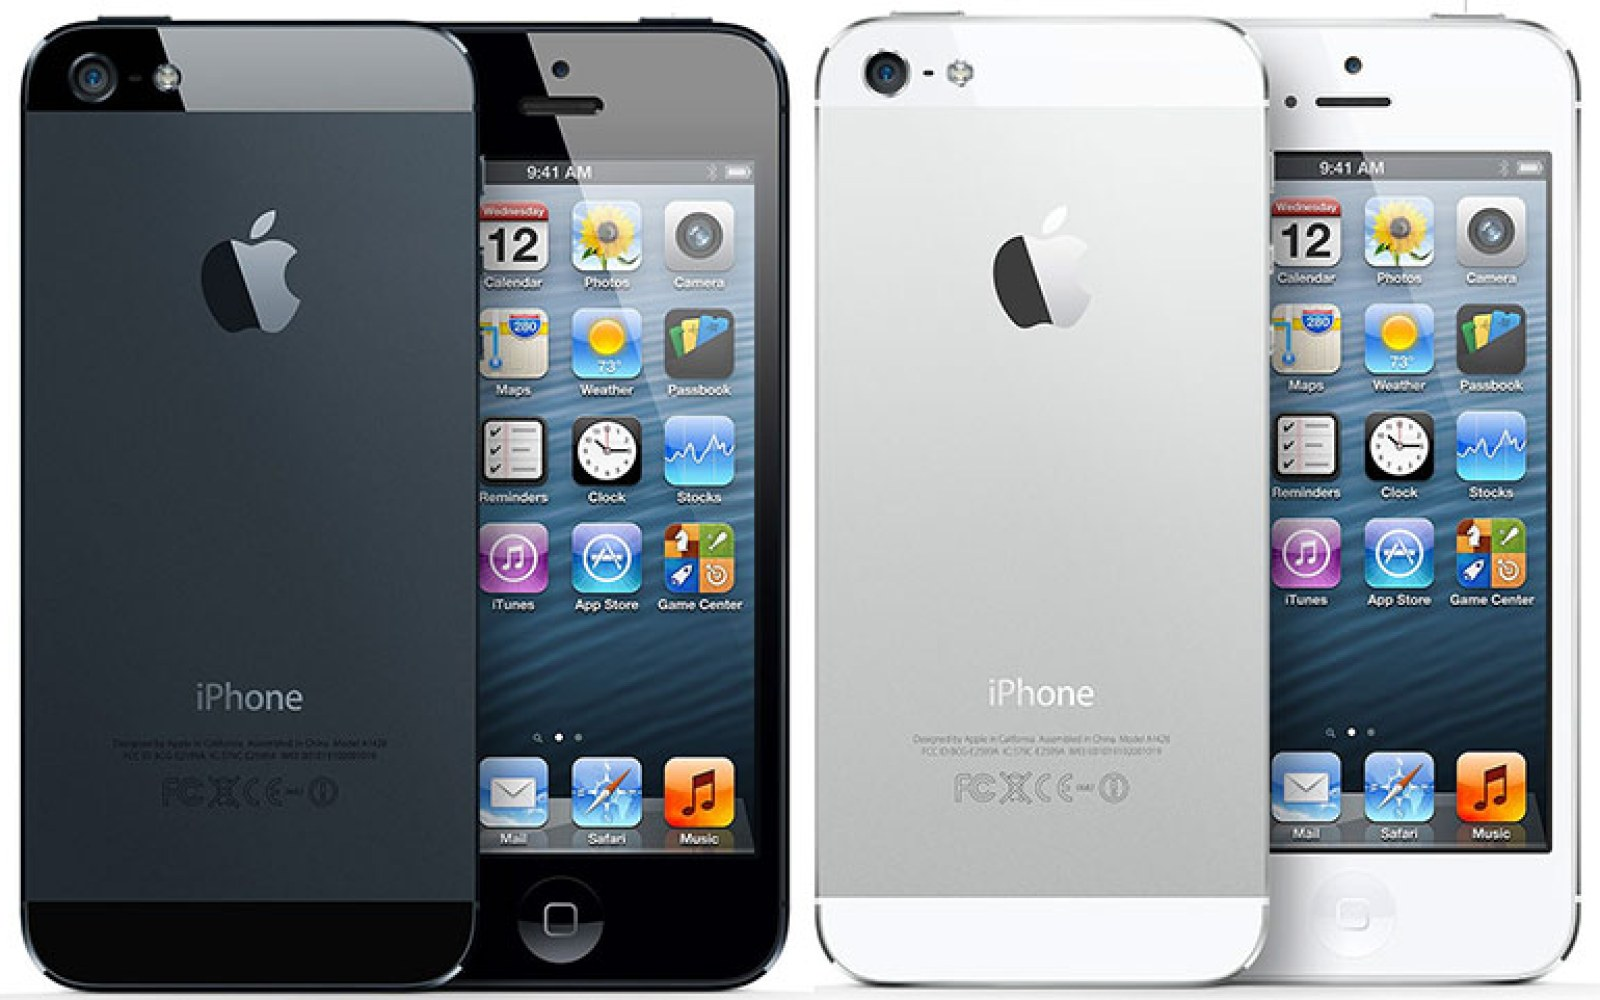 iPhone 5 devices with sleep button issue may qualify for an extra $80 trade-in credit at Apple Retail locations